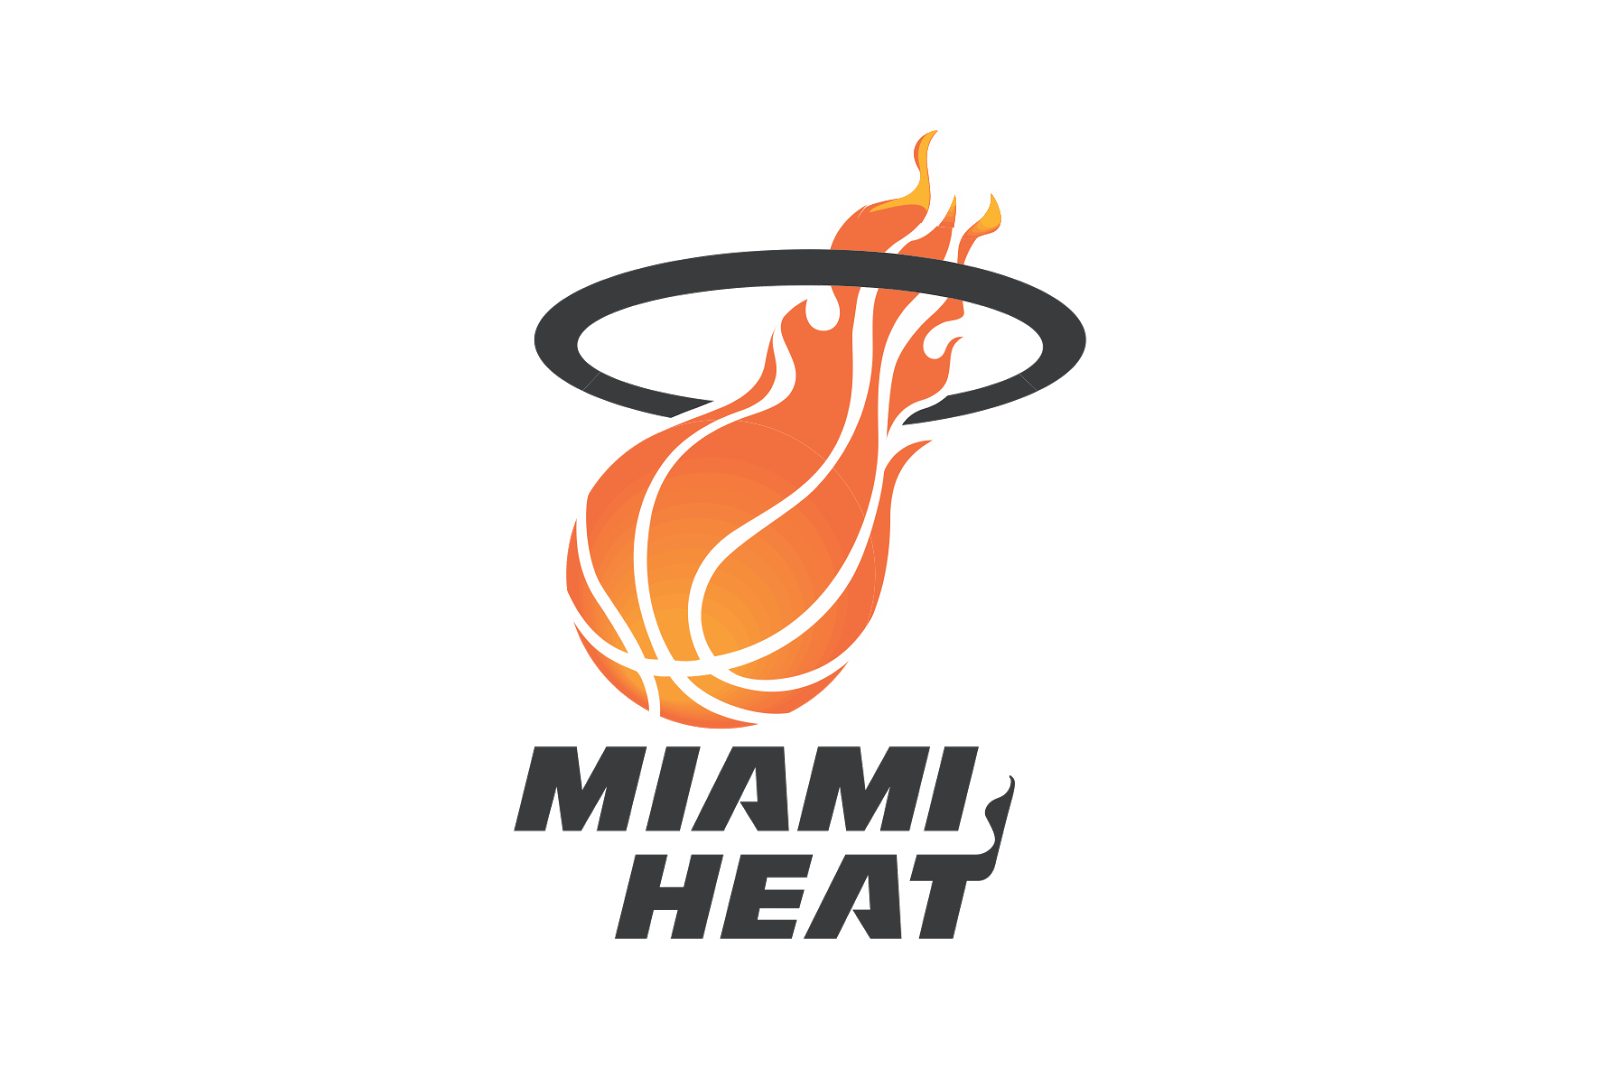 miami heat logo transparent png stickpng rh stickpng com heart logos hat logos design